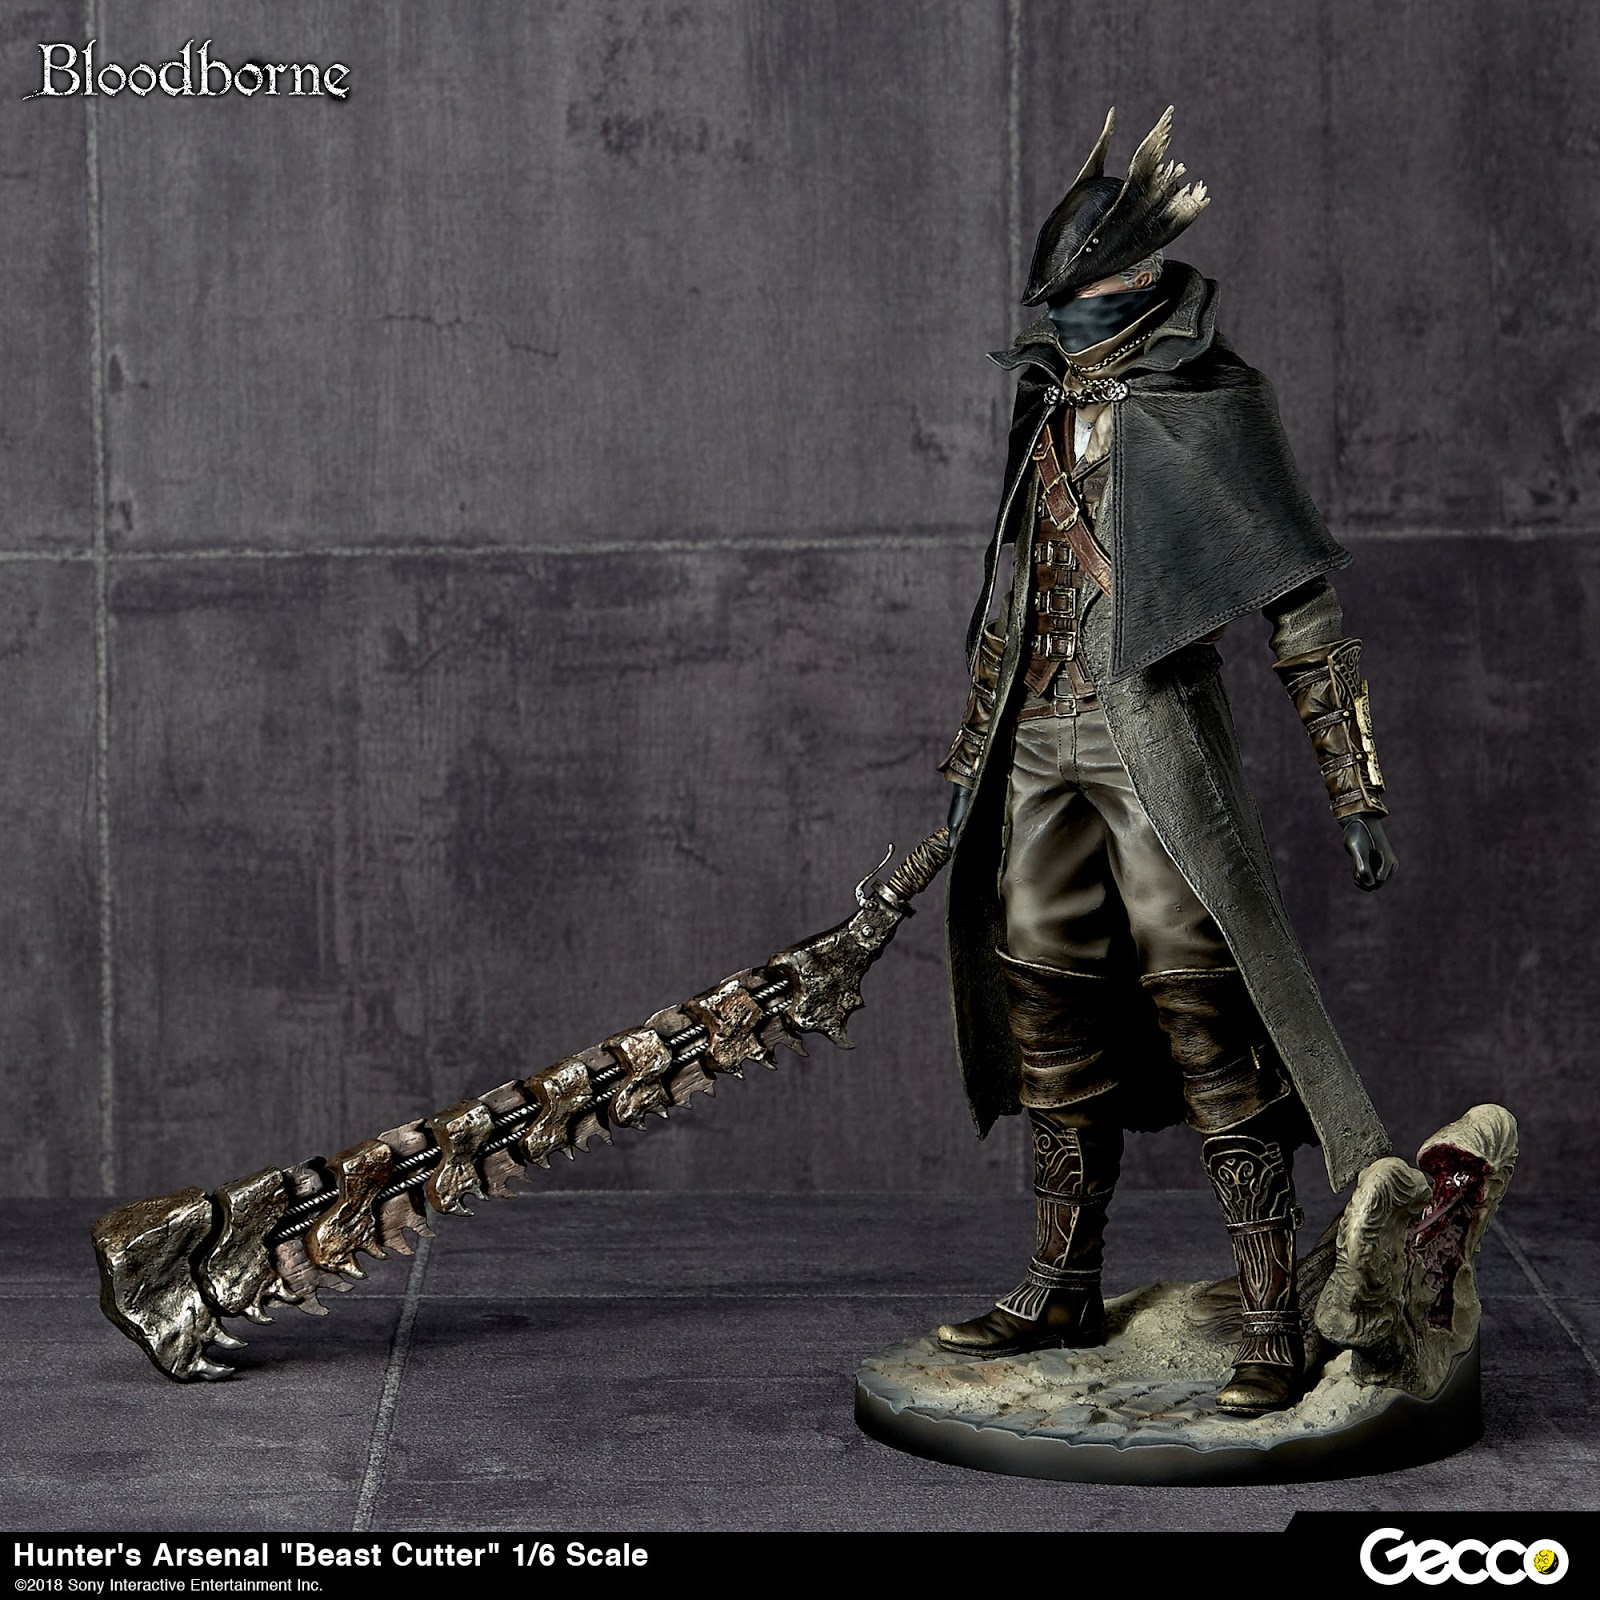 Collecting Toyz: Bloodborne Weapon Collection by Gecco